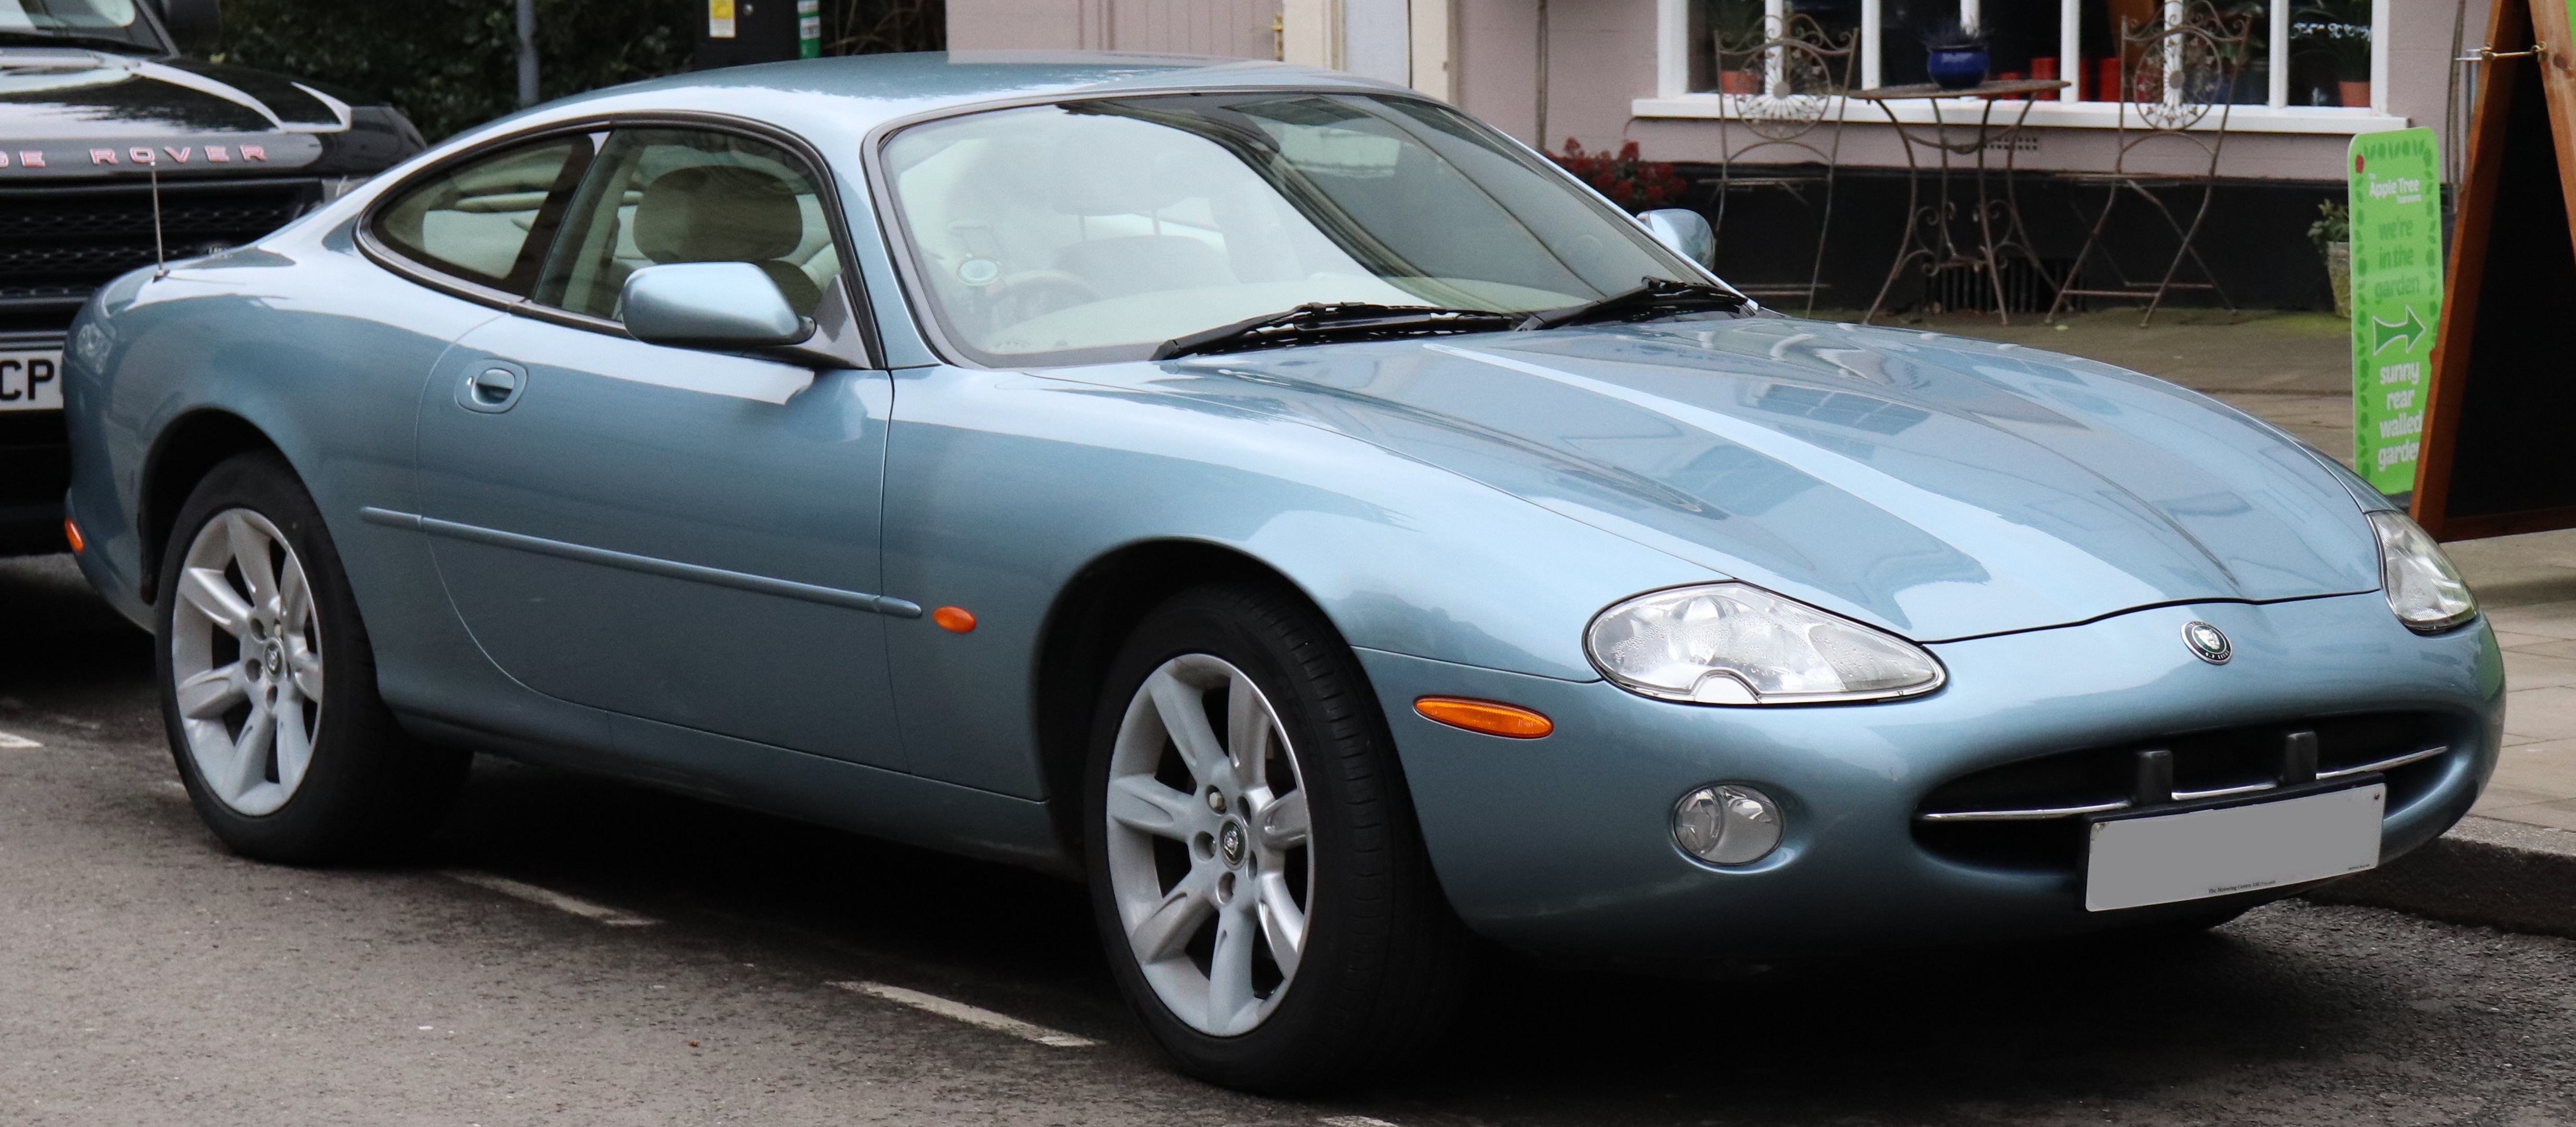 and with another jaguar growler xkr blenheim show anoother parts palace s may uk sepang sepangs ix view club xkec web